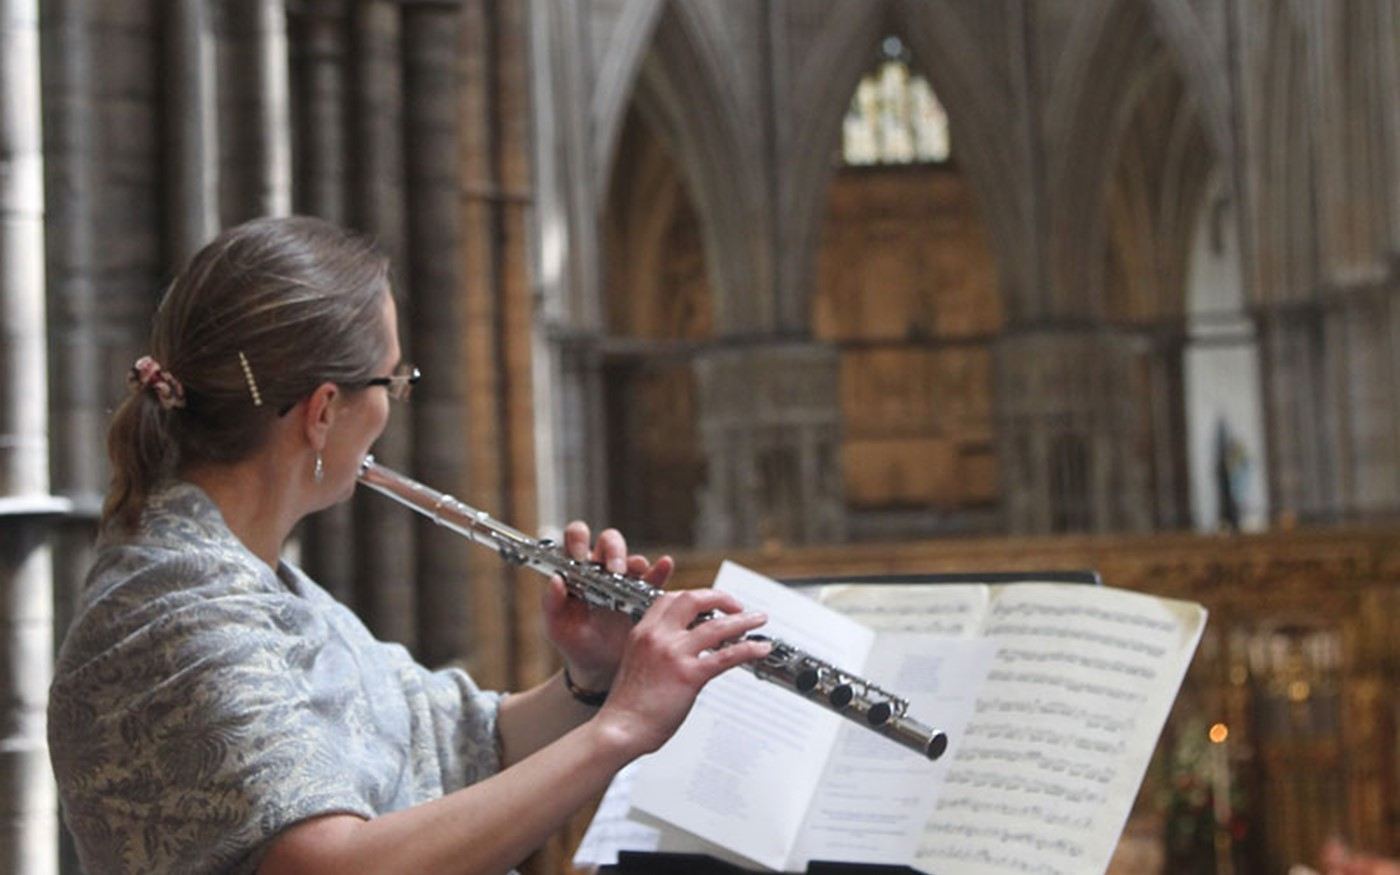 Flautist Kate Grace, Whitelands College Music Scholar, plays Les Folies d'Espagne by Marin Marais (1656-1728)